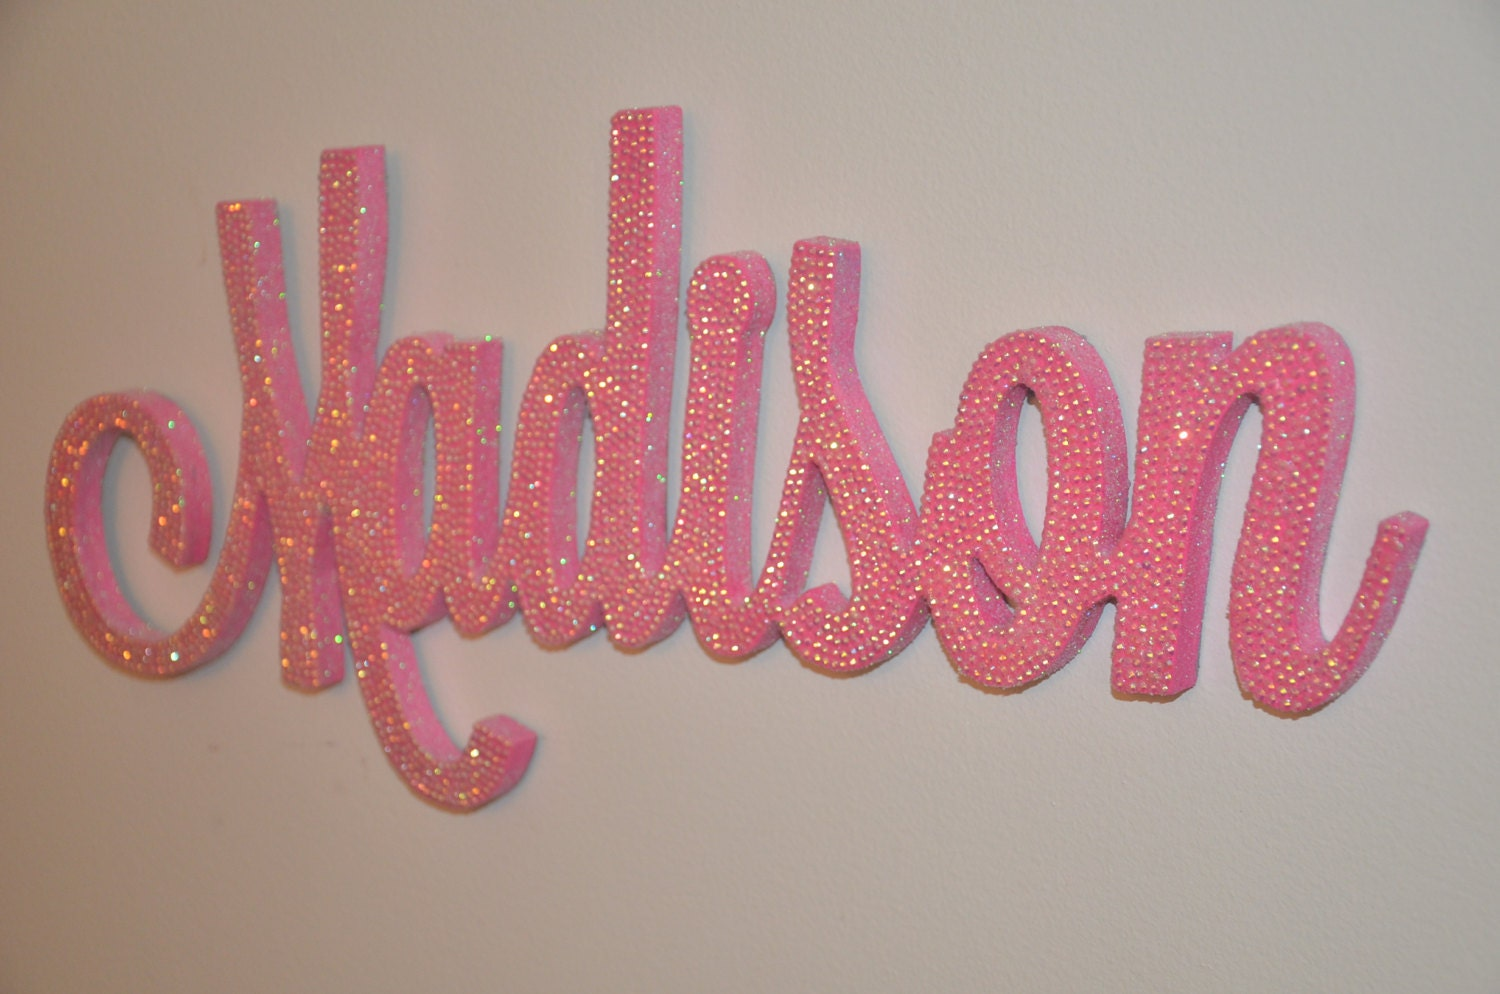 Decorative Wall Letters 18 inch rhinestone name plaque bling decorative wall letters